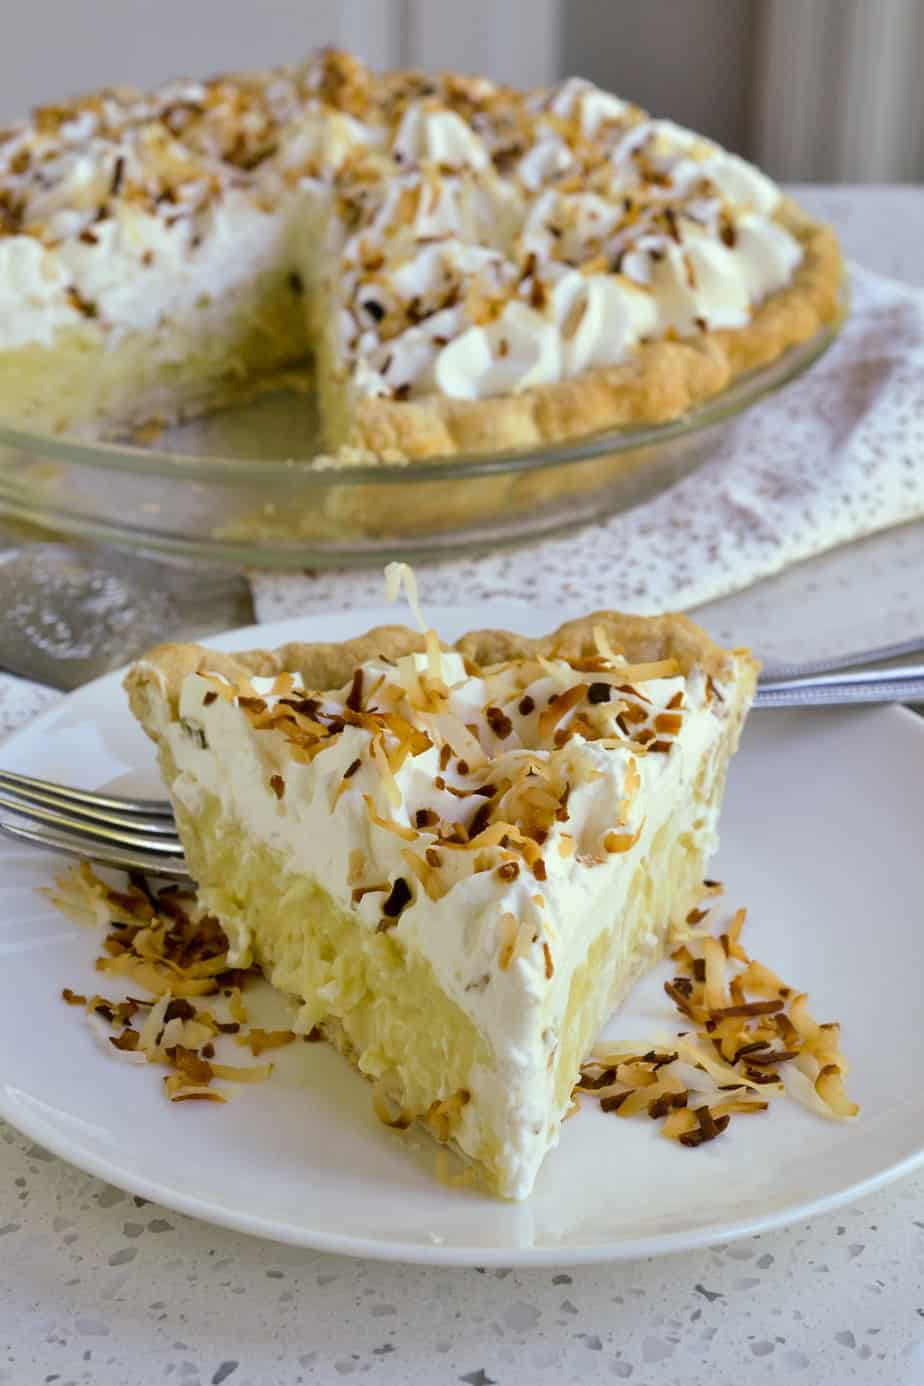 A delicious slice of cream pie with coconut pudding, whipped cream, and toasted coconut.